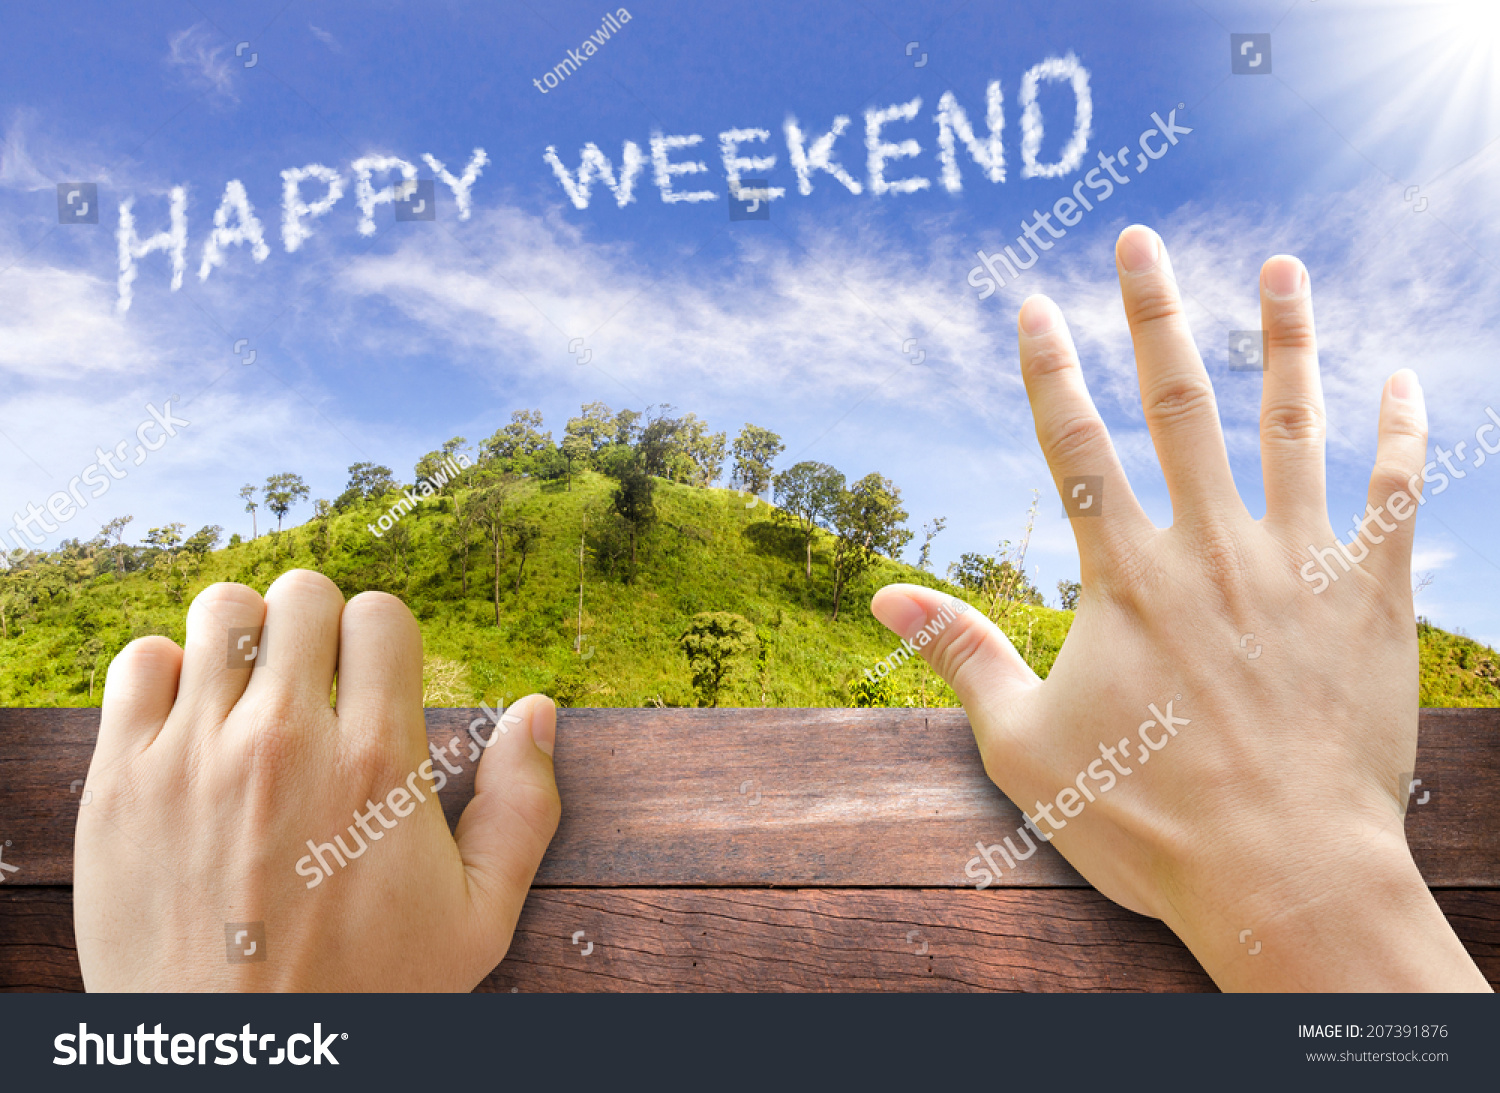 Happy Weekend Text Cloud Sky Stock Photo 207391876 ...